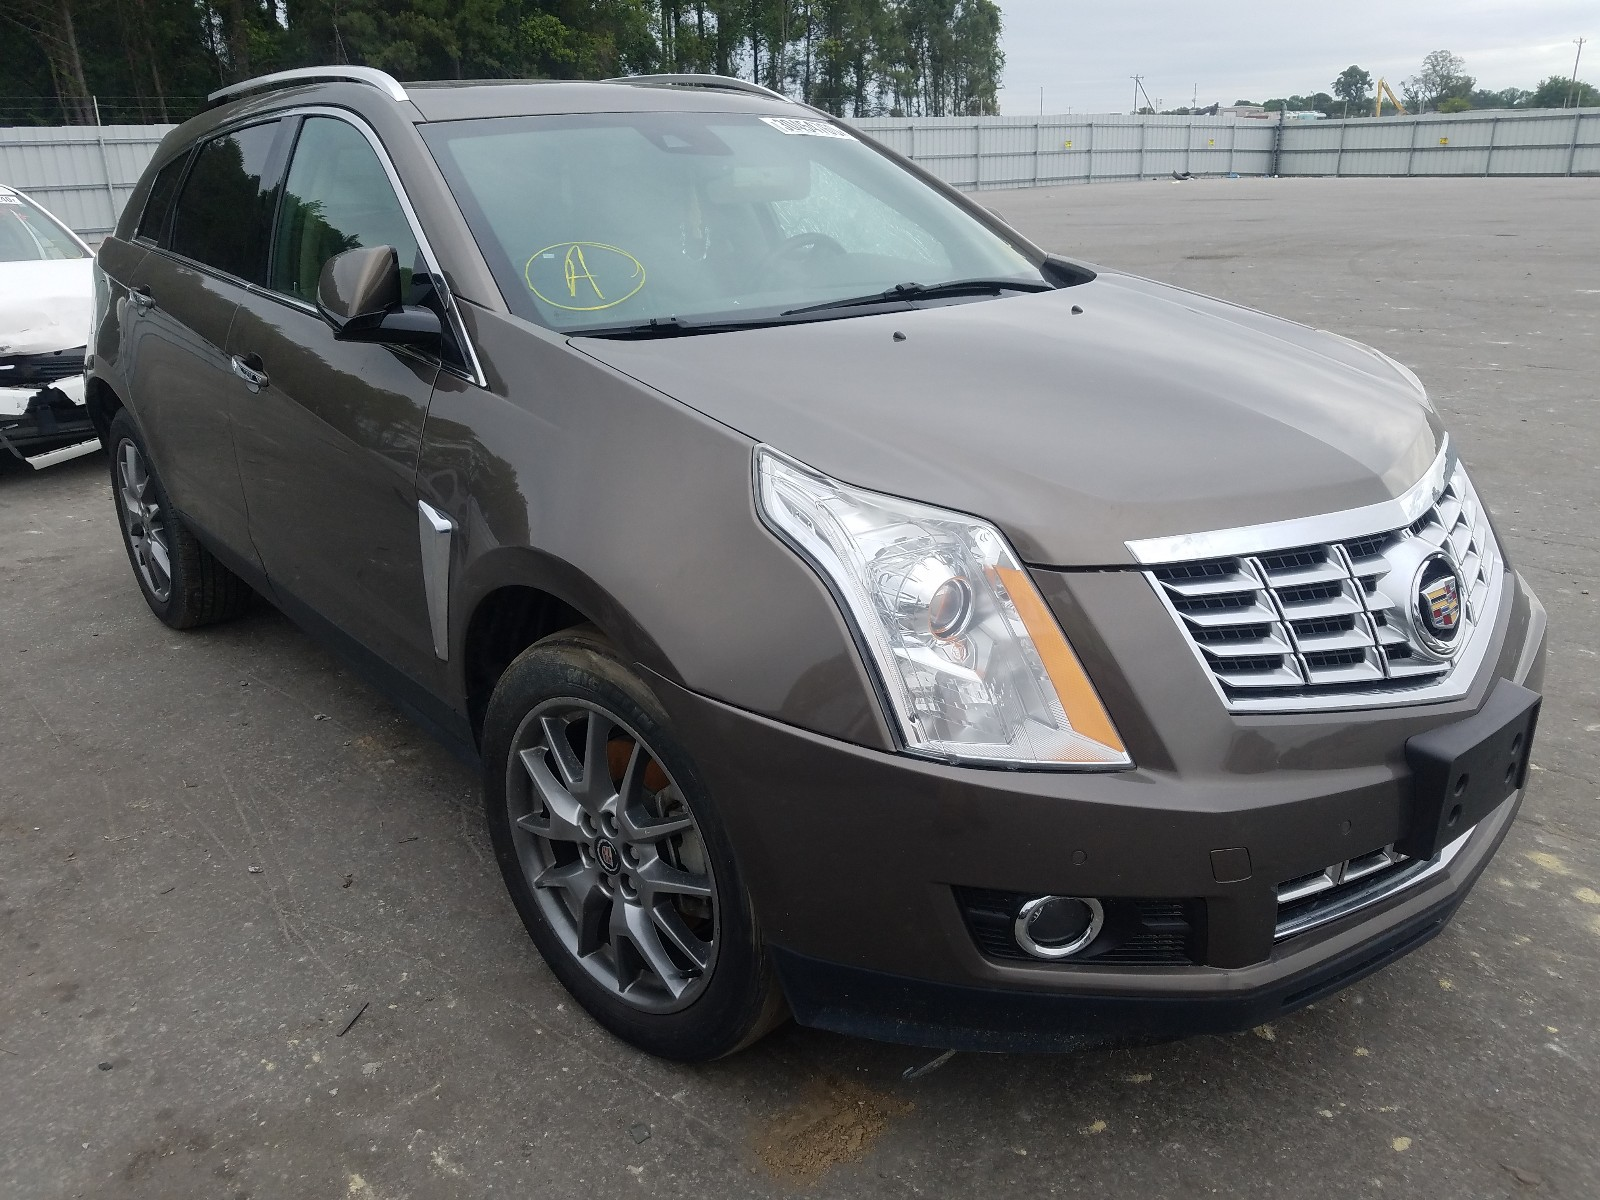 2016 Cadillac SRX Perfor